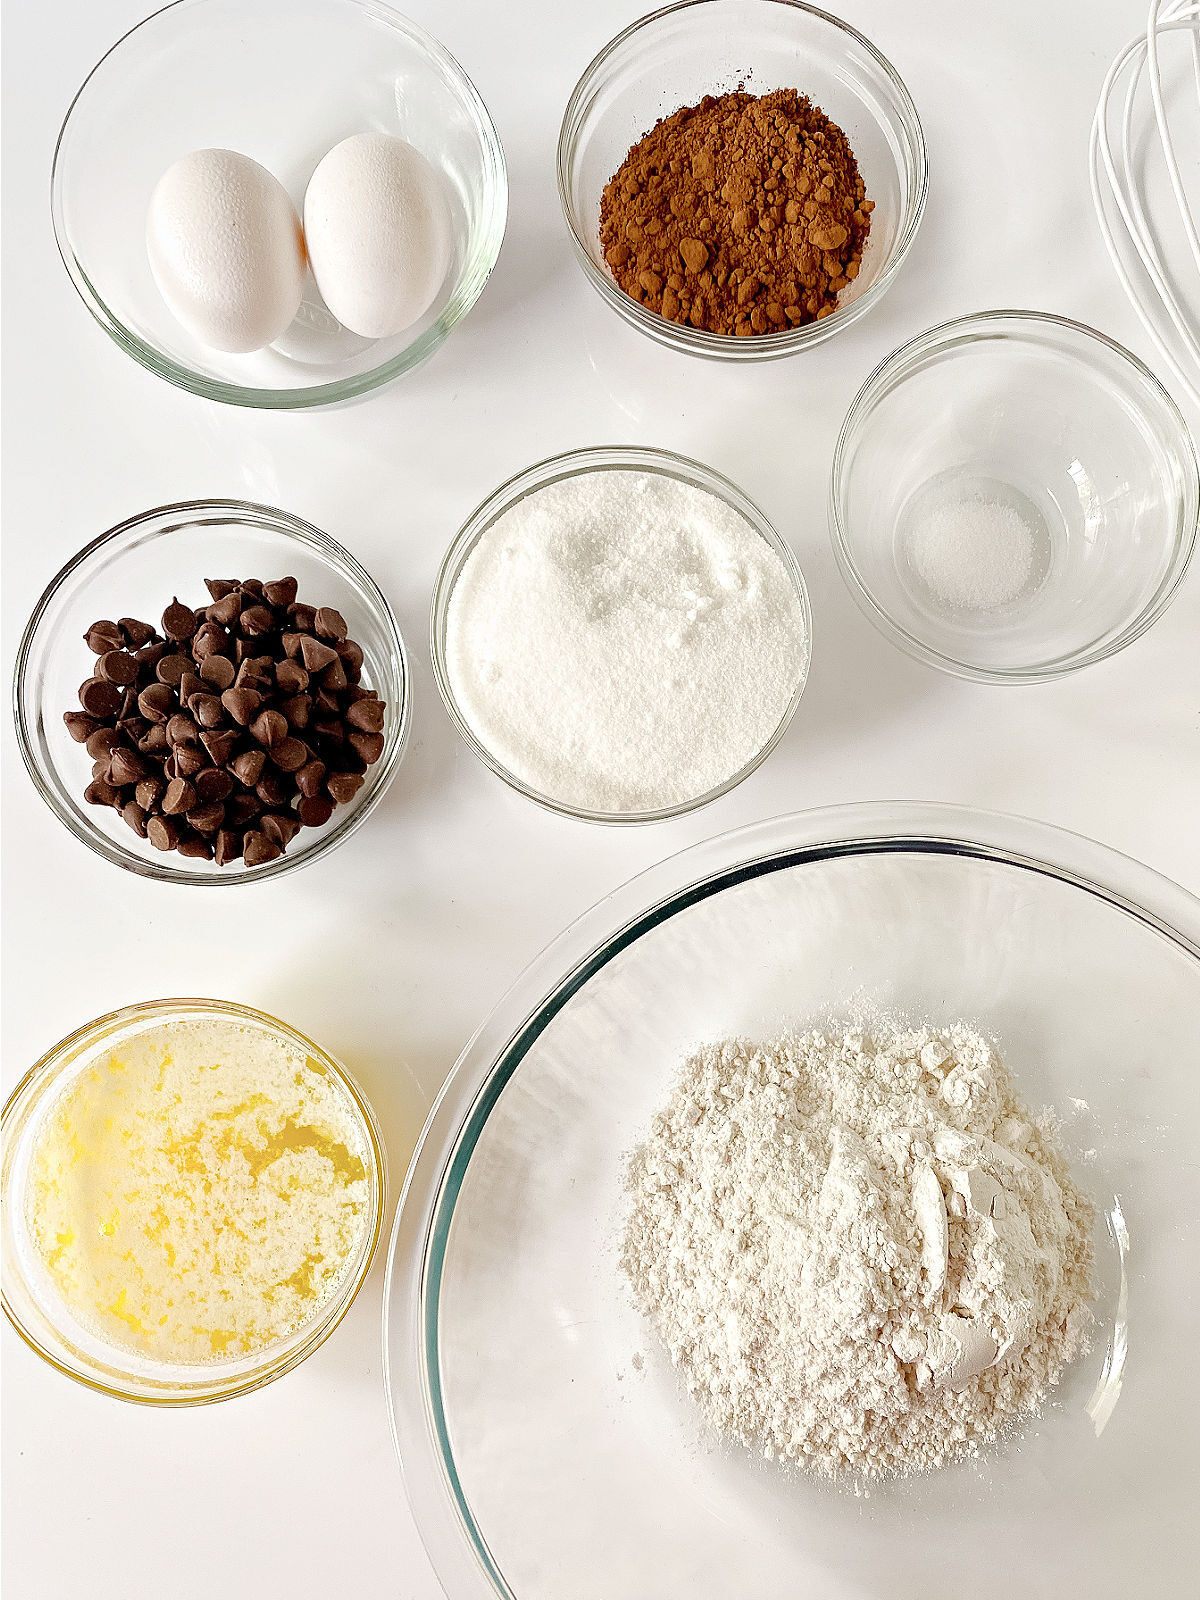 Flour, cocoa powder, sugar, chocolate chips, melted butter, and two eggs in glass bowls.